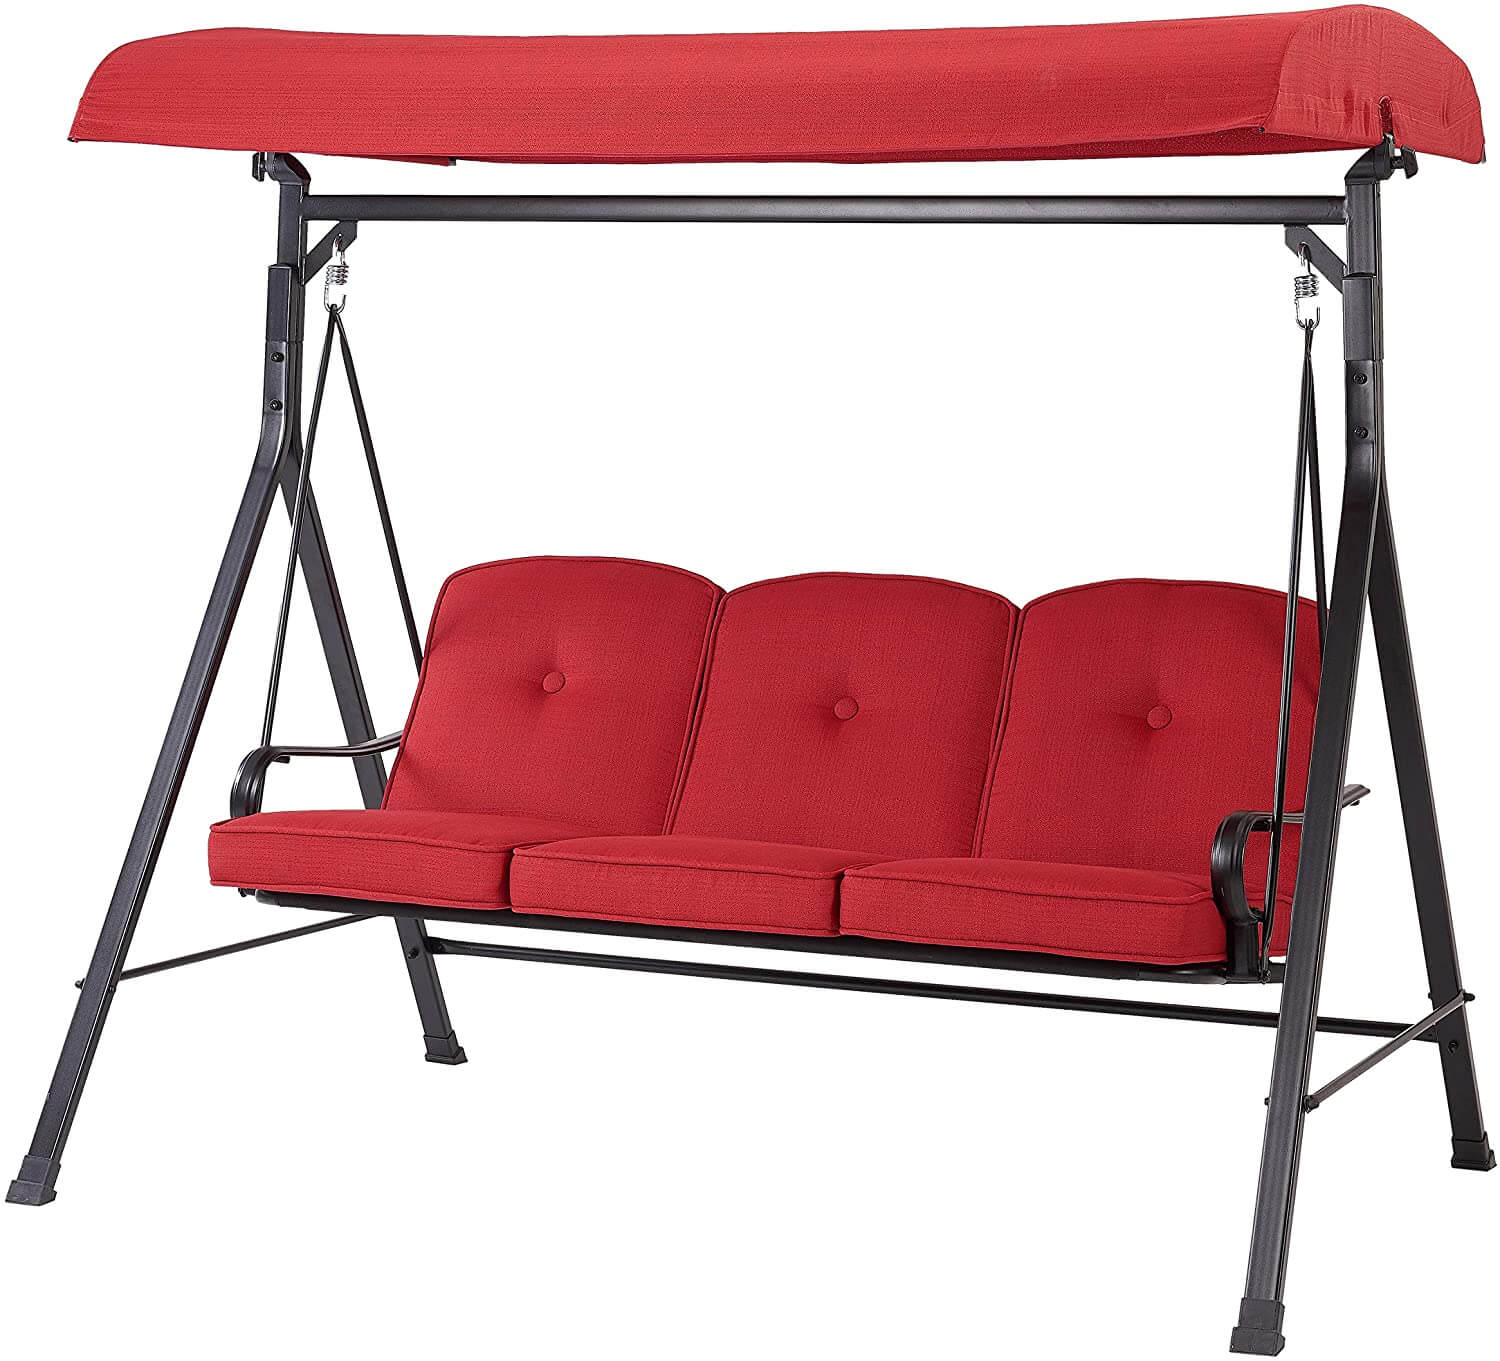 MAINSTAY NEW CALLIMONT PARK 3 SEAT CANOPY PORCH SWING BED REVIEWS